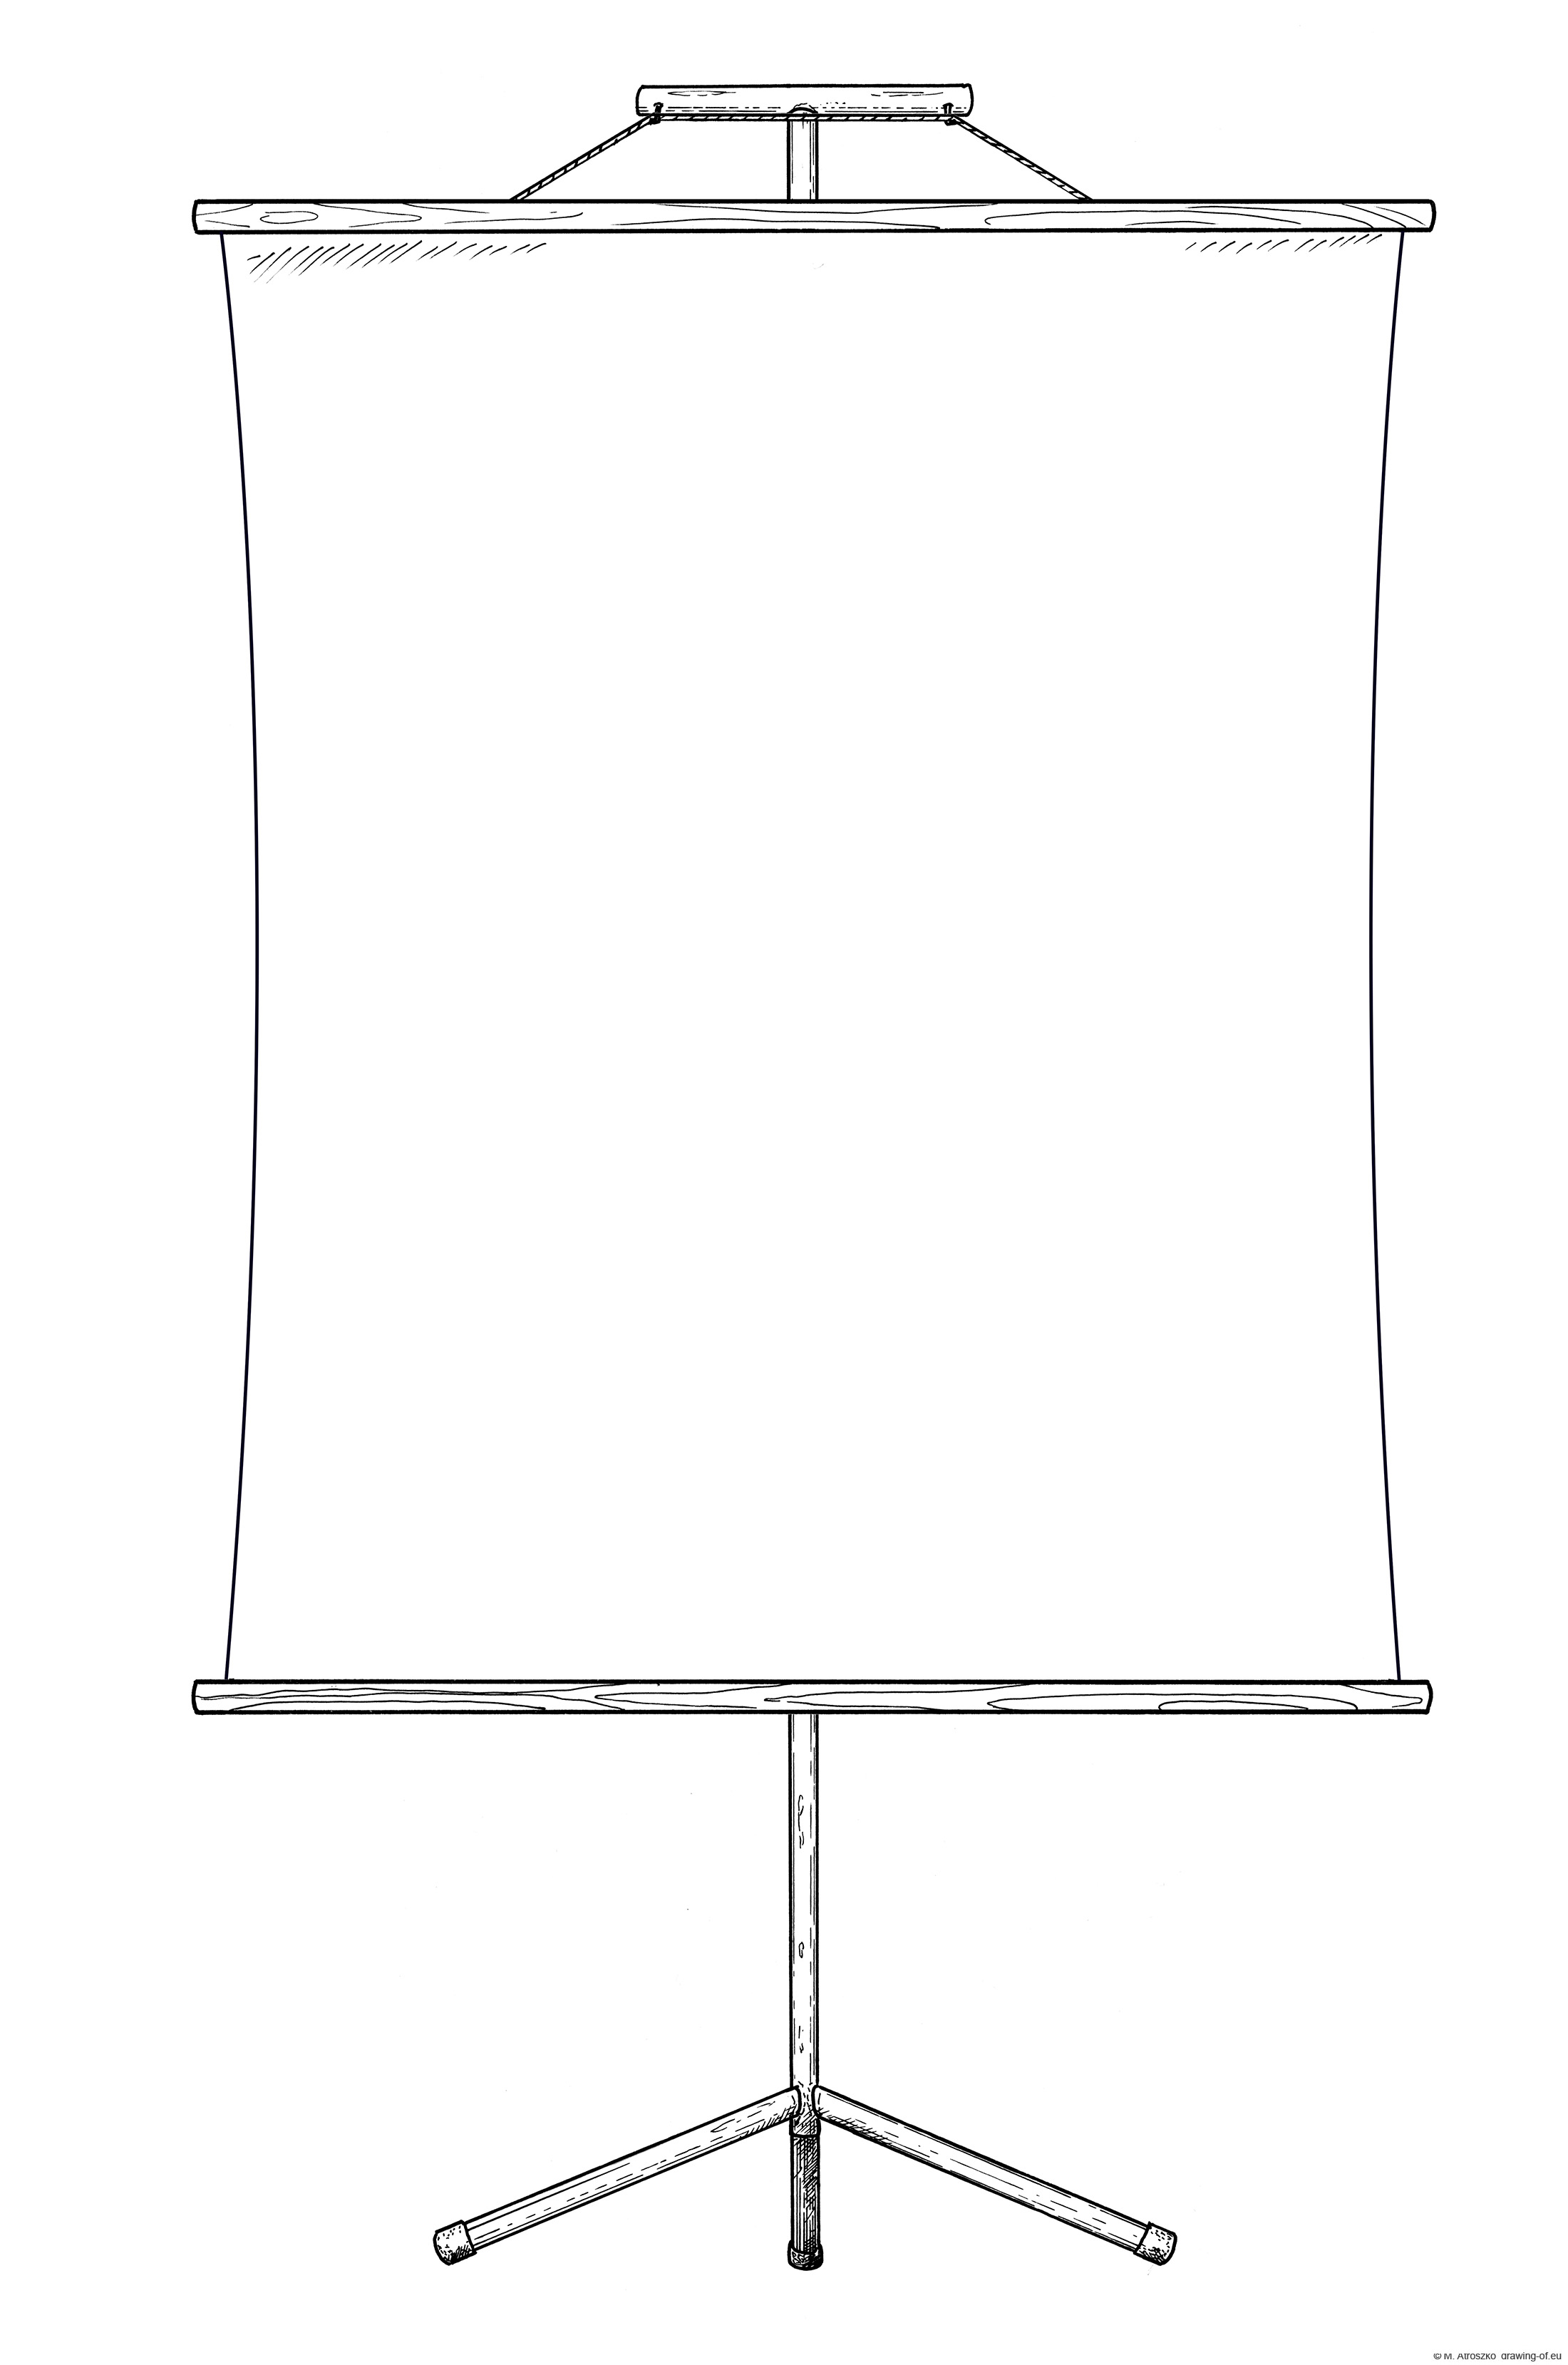 Blank banner - billboard - map on a stand